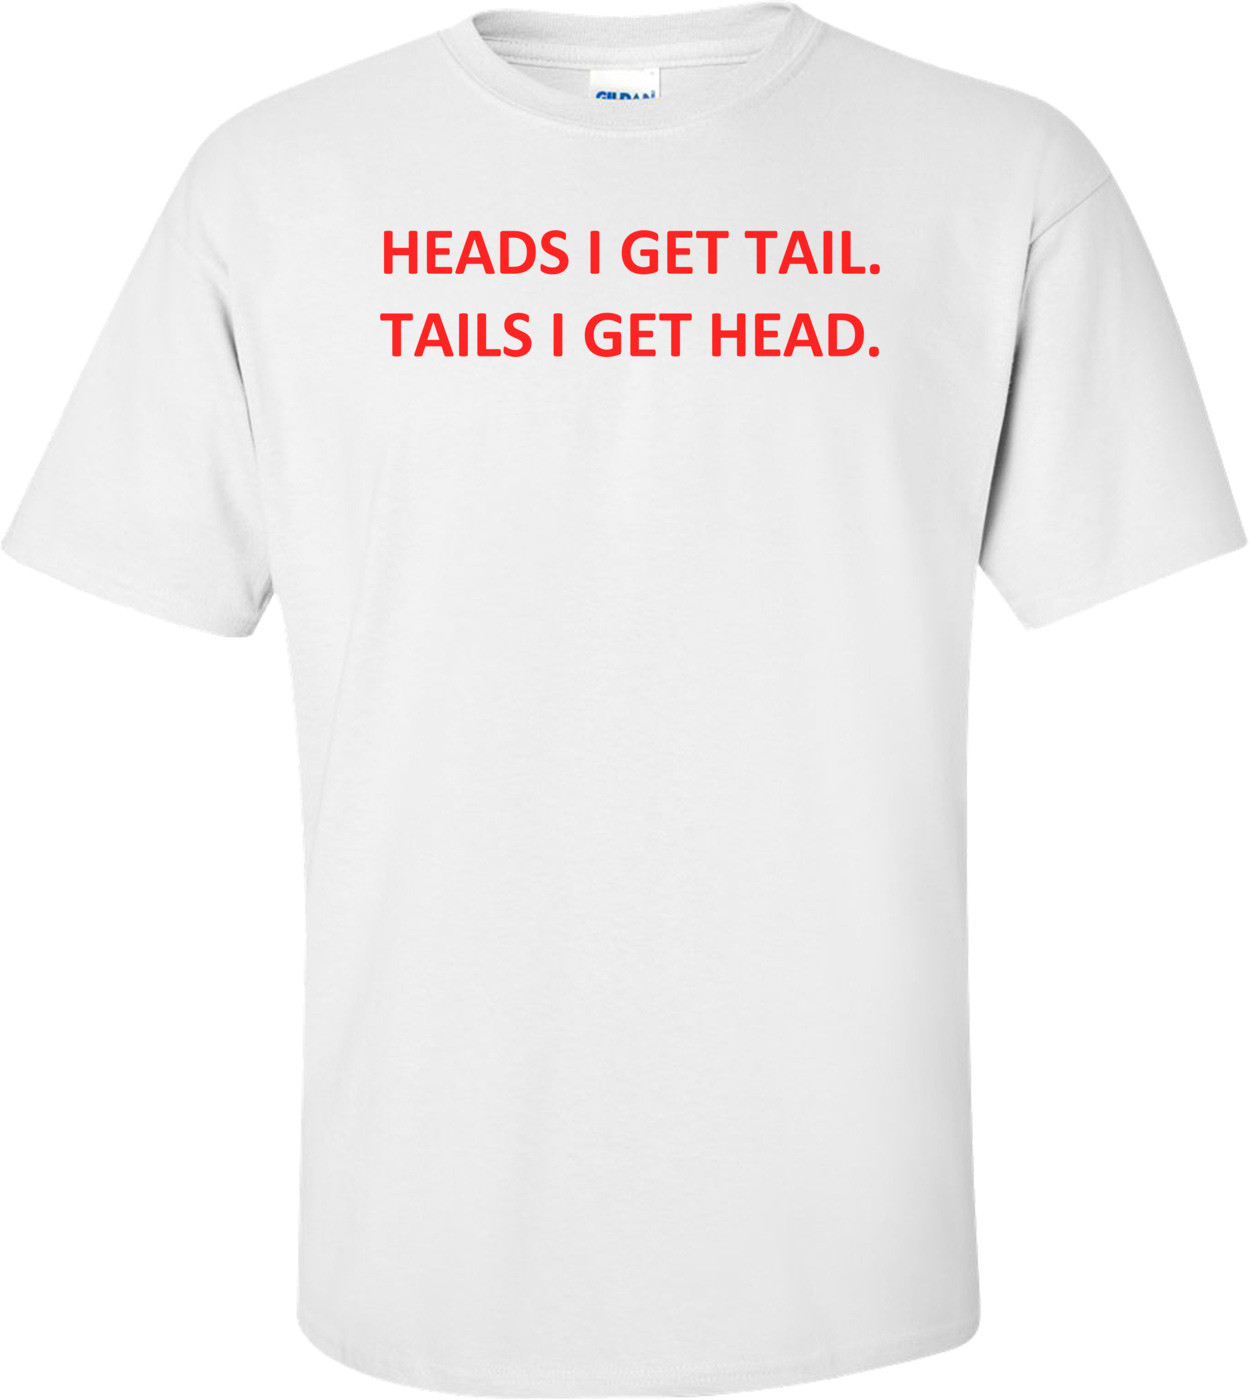 HEADS I GET TAIL. TAILS I GET HEAD. Shirt